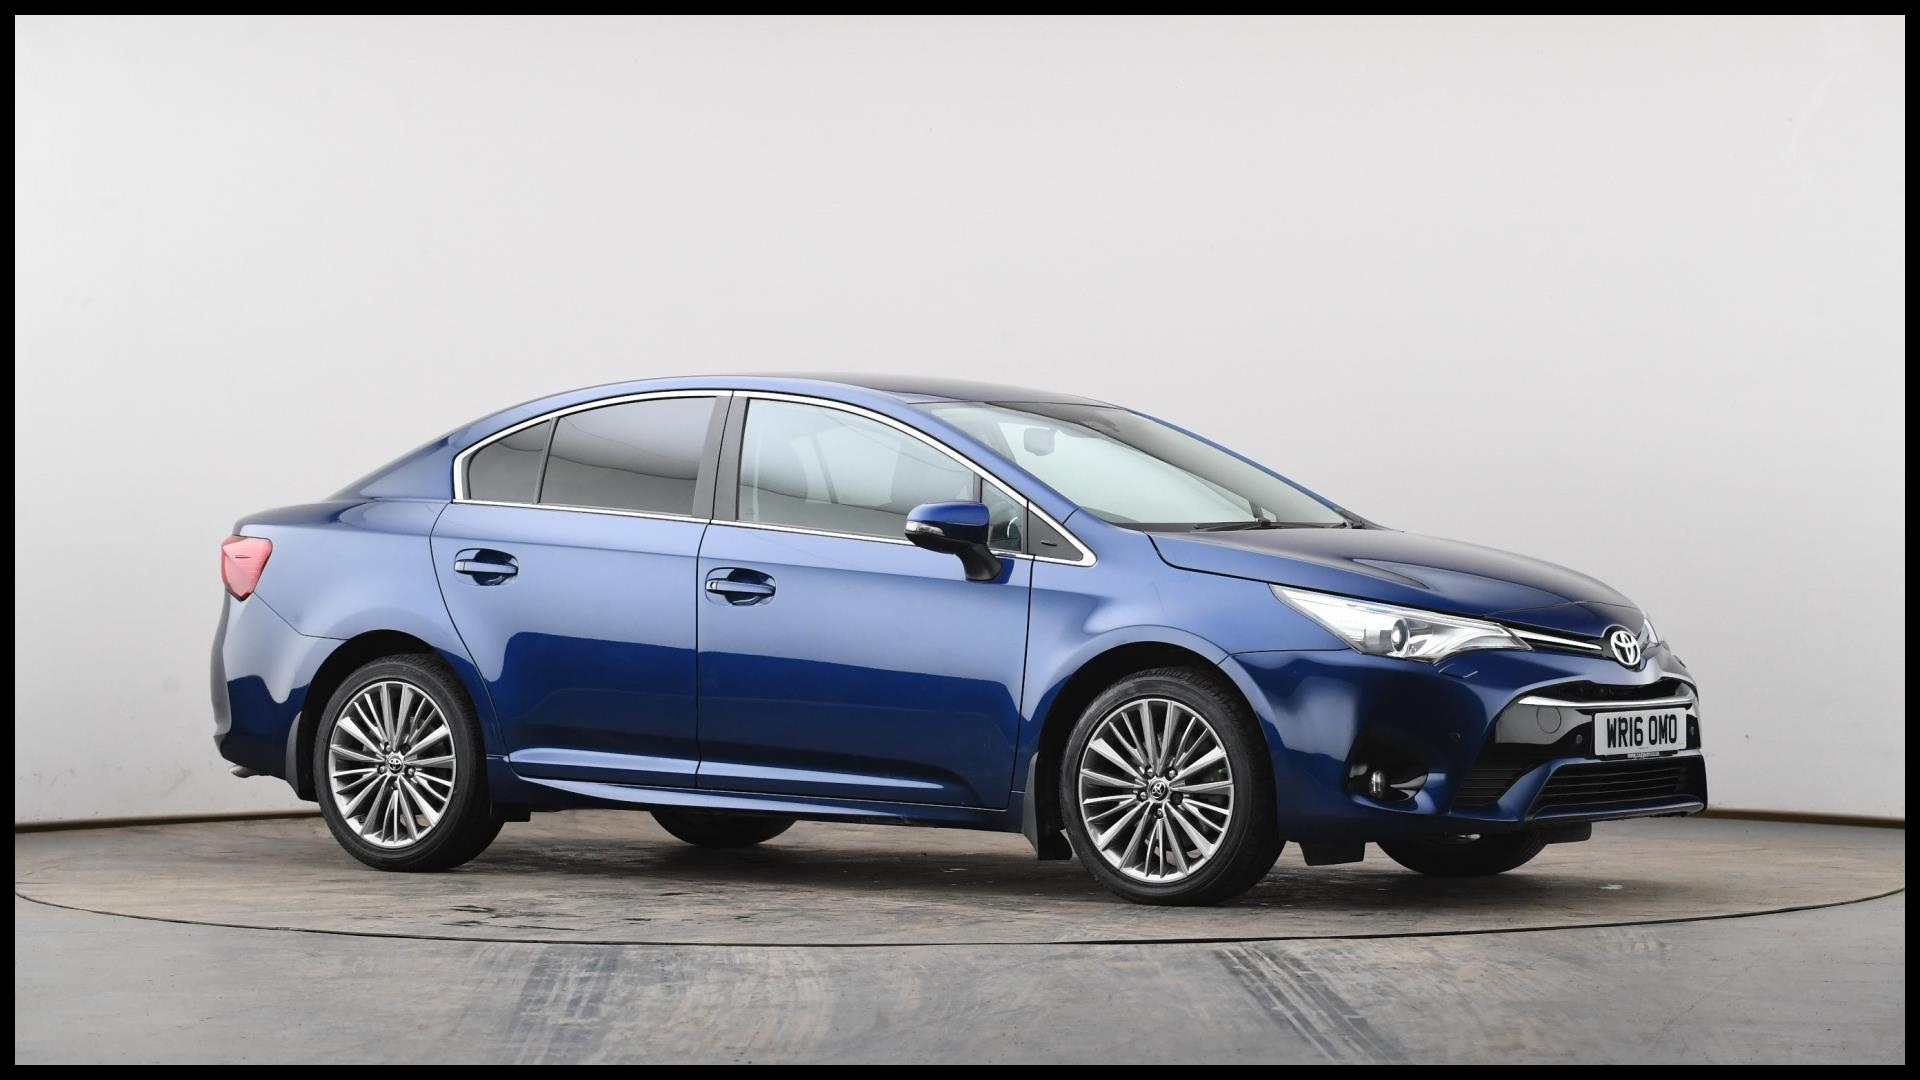 Special toyota 0 Apr New Used toyota Avensis 2 0d Excel 4dr Blue Wr16omo New Review